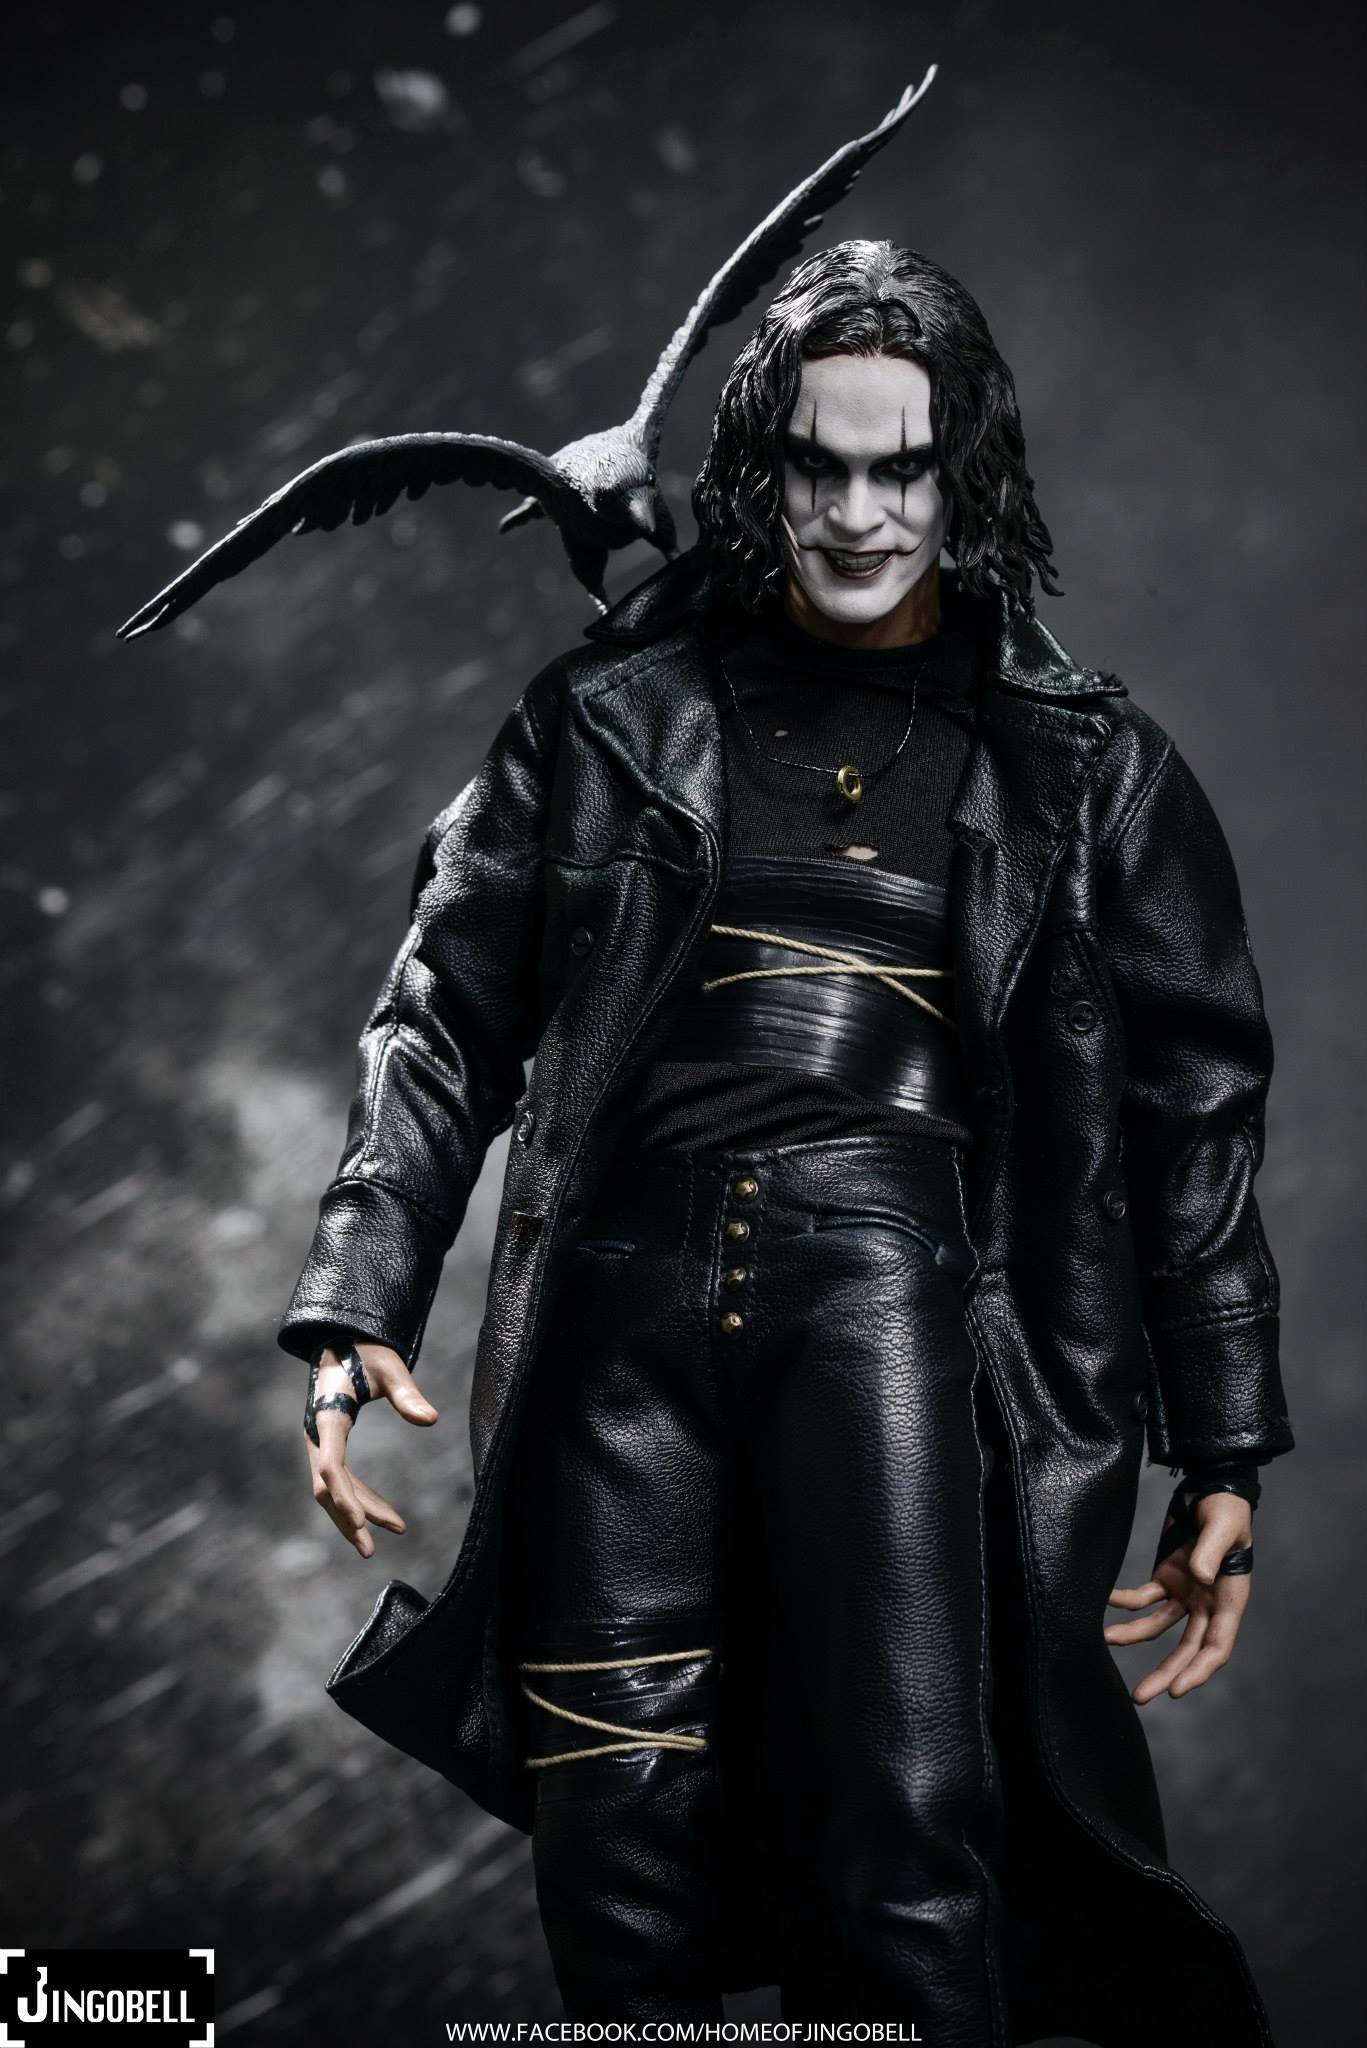 The Crow Wallpaper Hd Posted By John Anderson